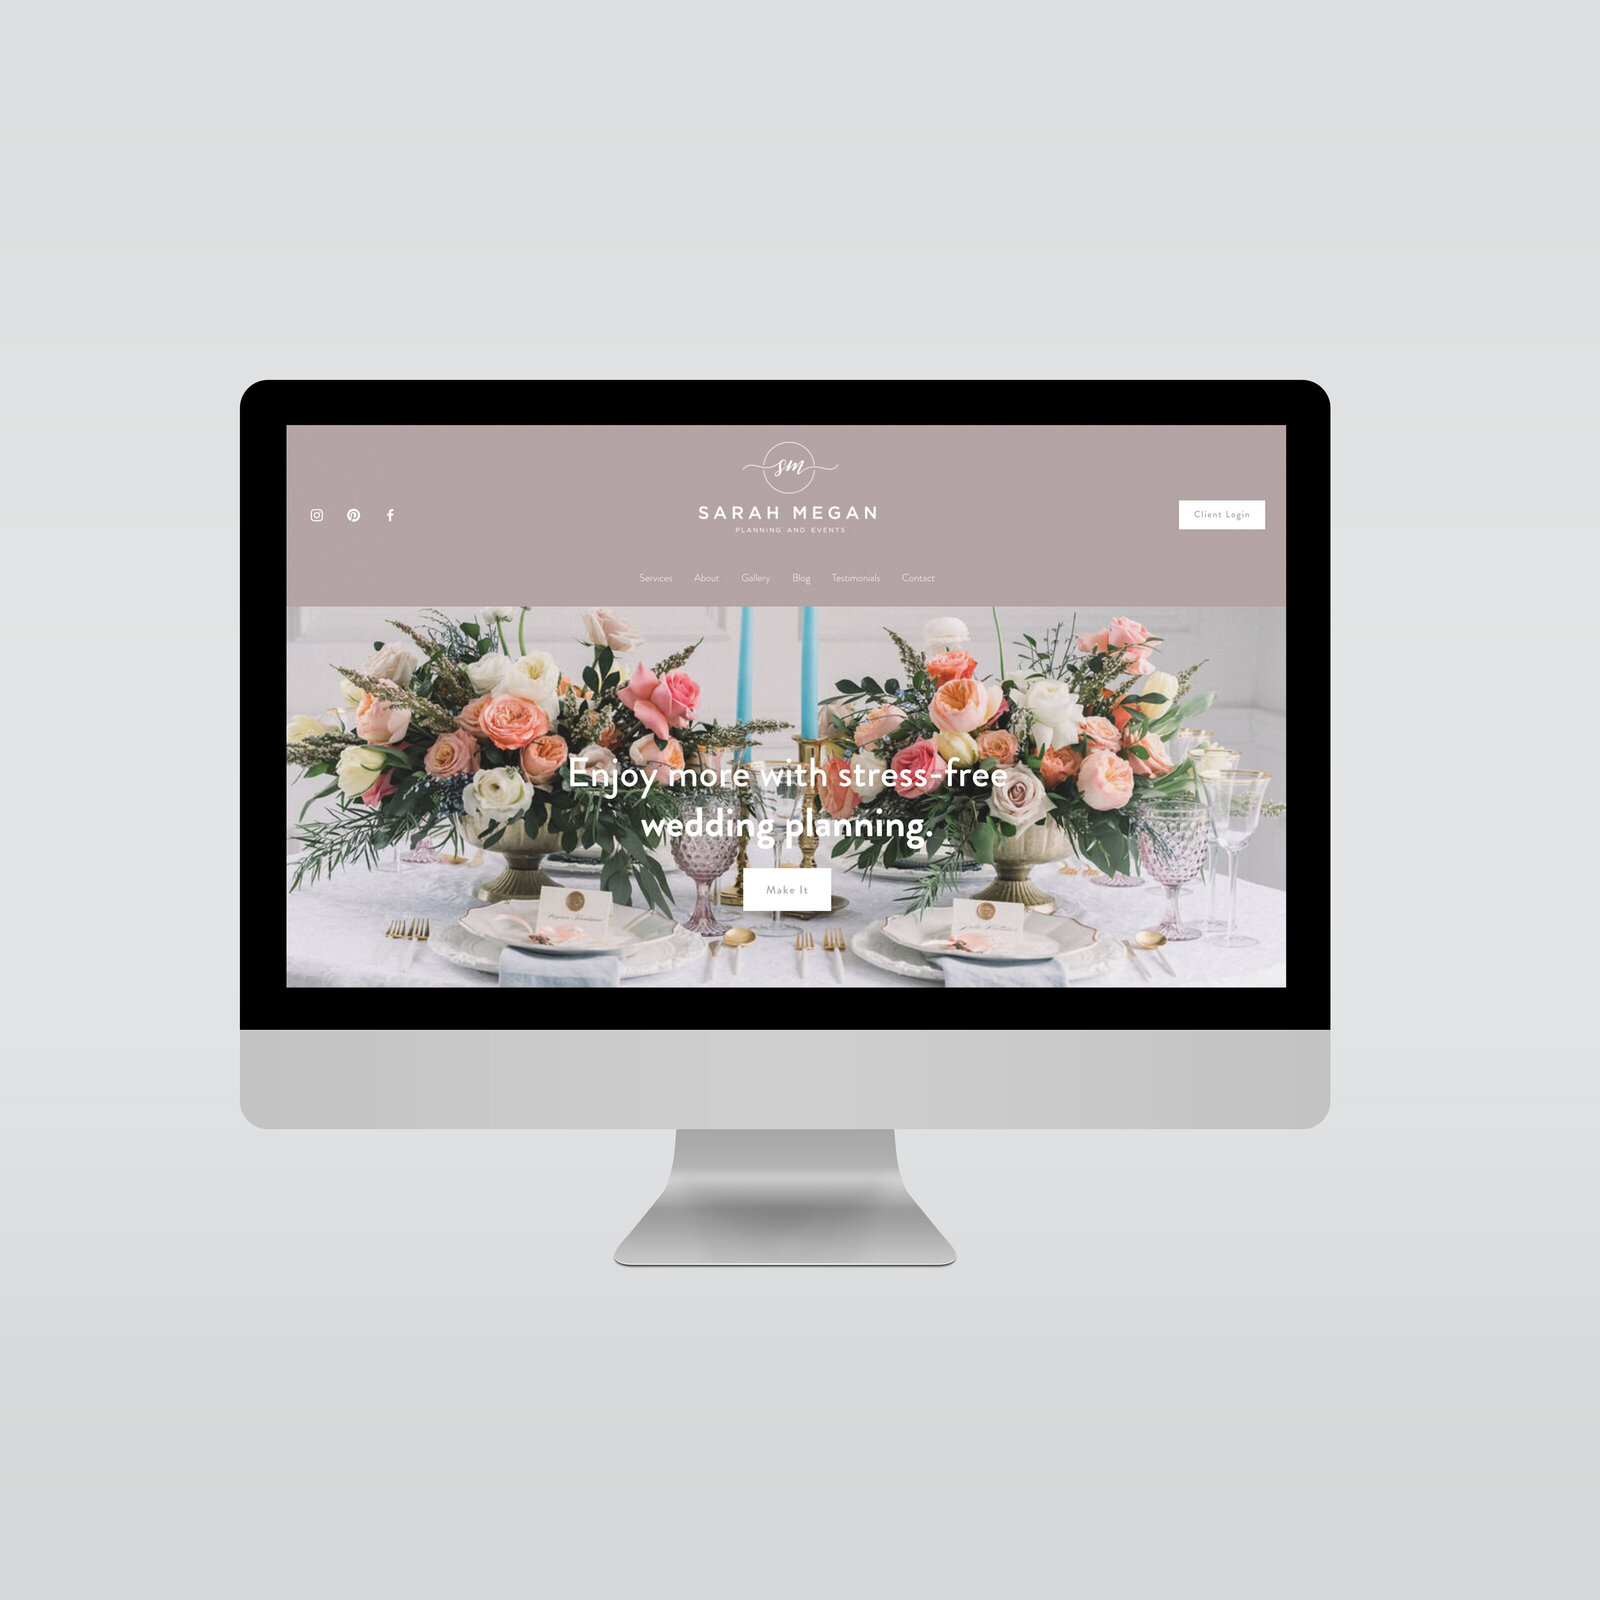 EVENTS BY SARAH MEGAN WEDDING PLANNER LOGO AND branding-website-ig